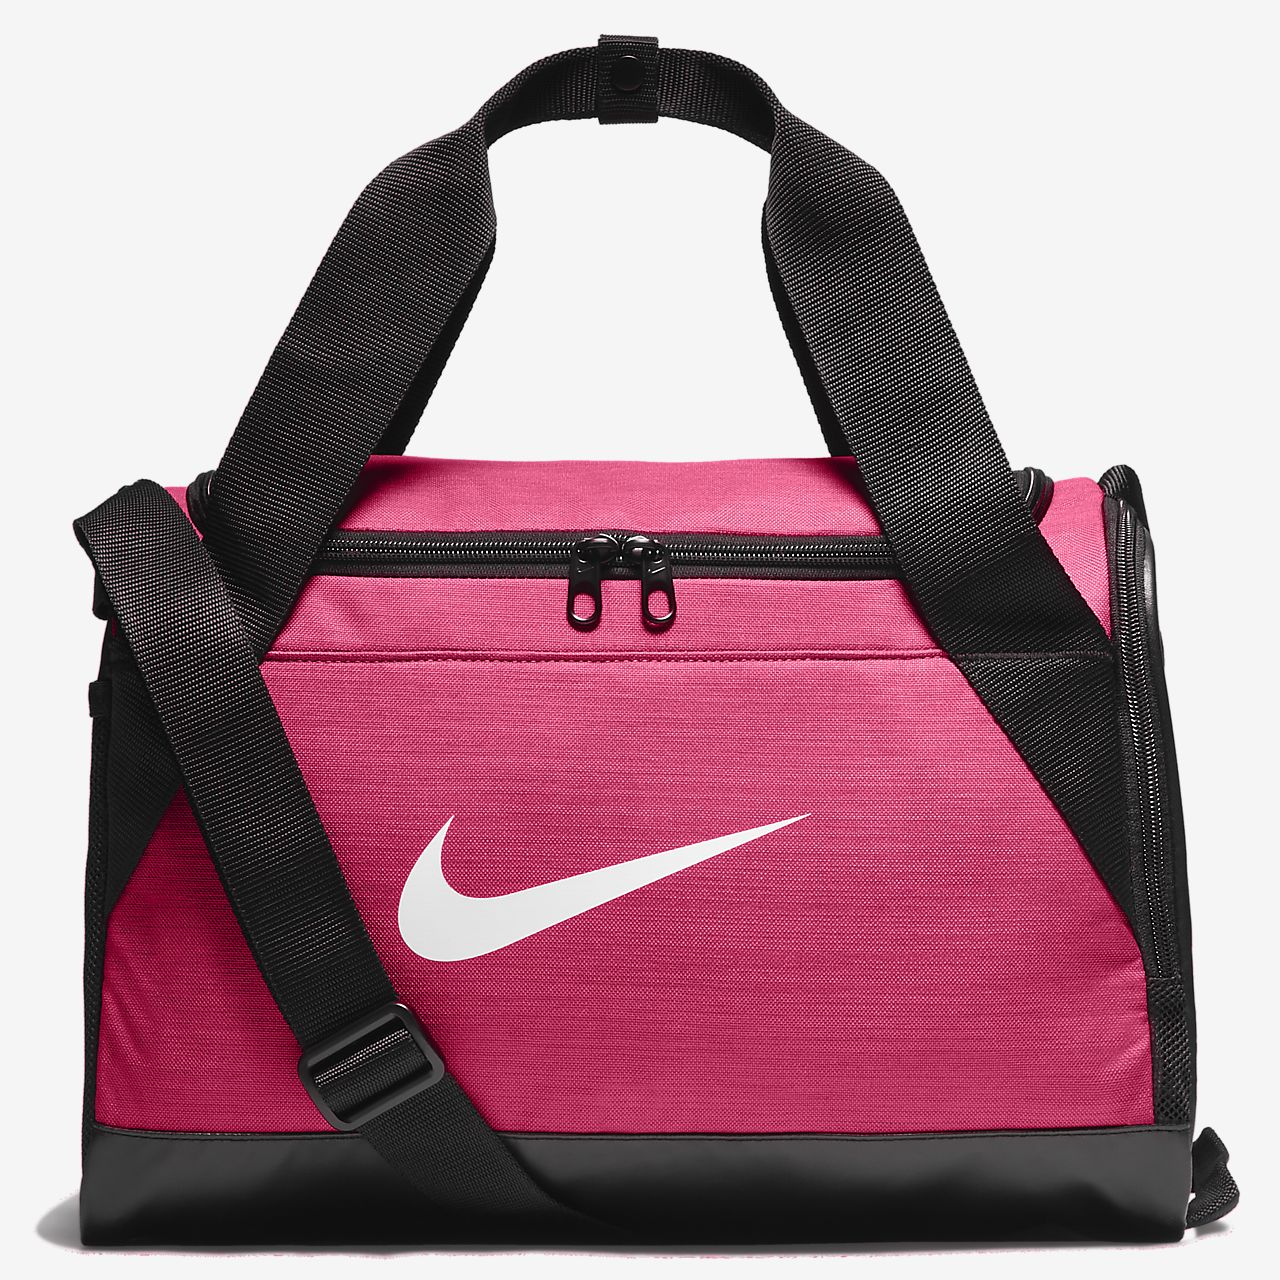 Nike Duffel Bag Small Dimensions